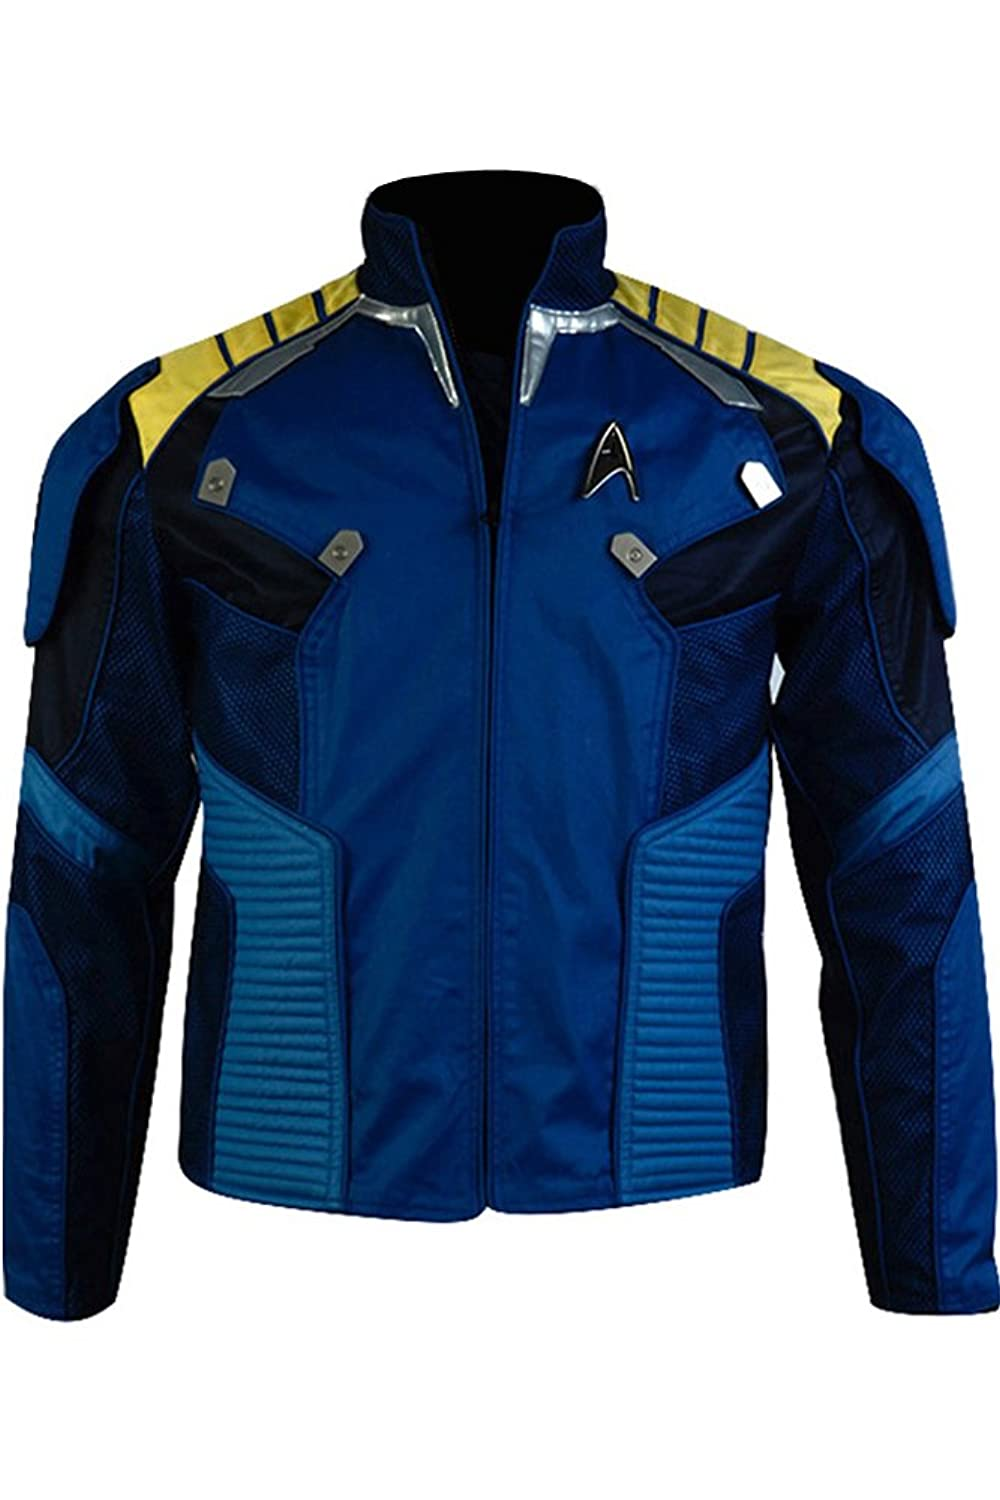 Star Trek Beyond Costume Captain Kirk Battle Jacket